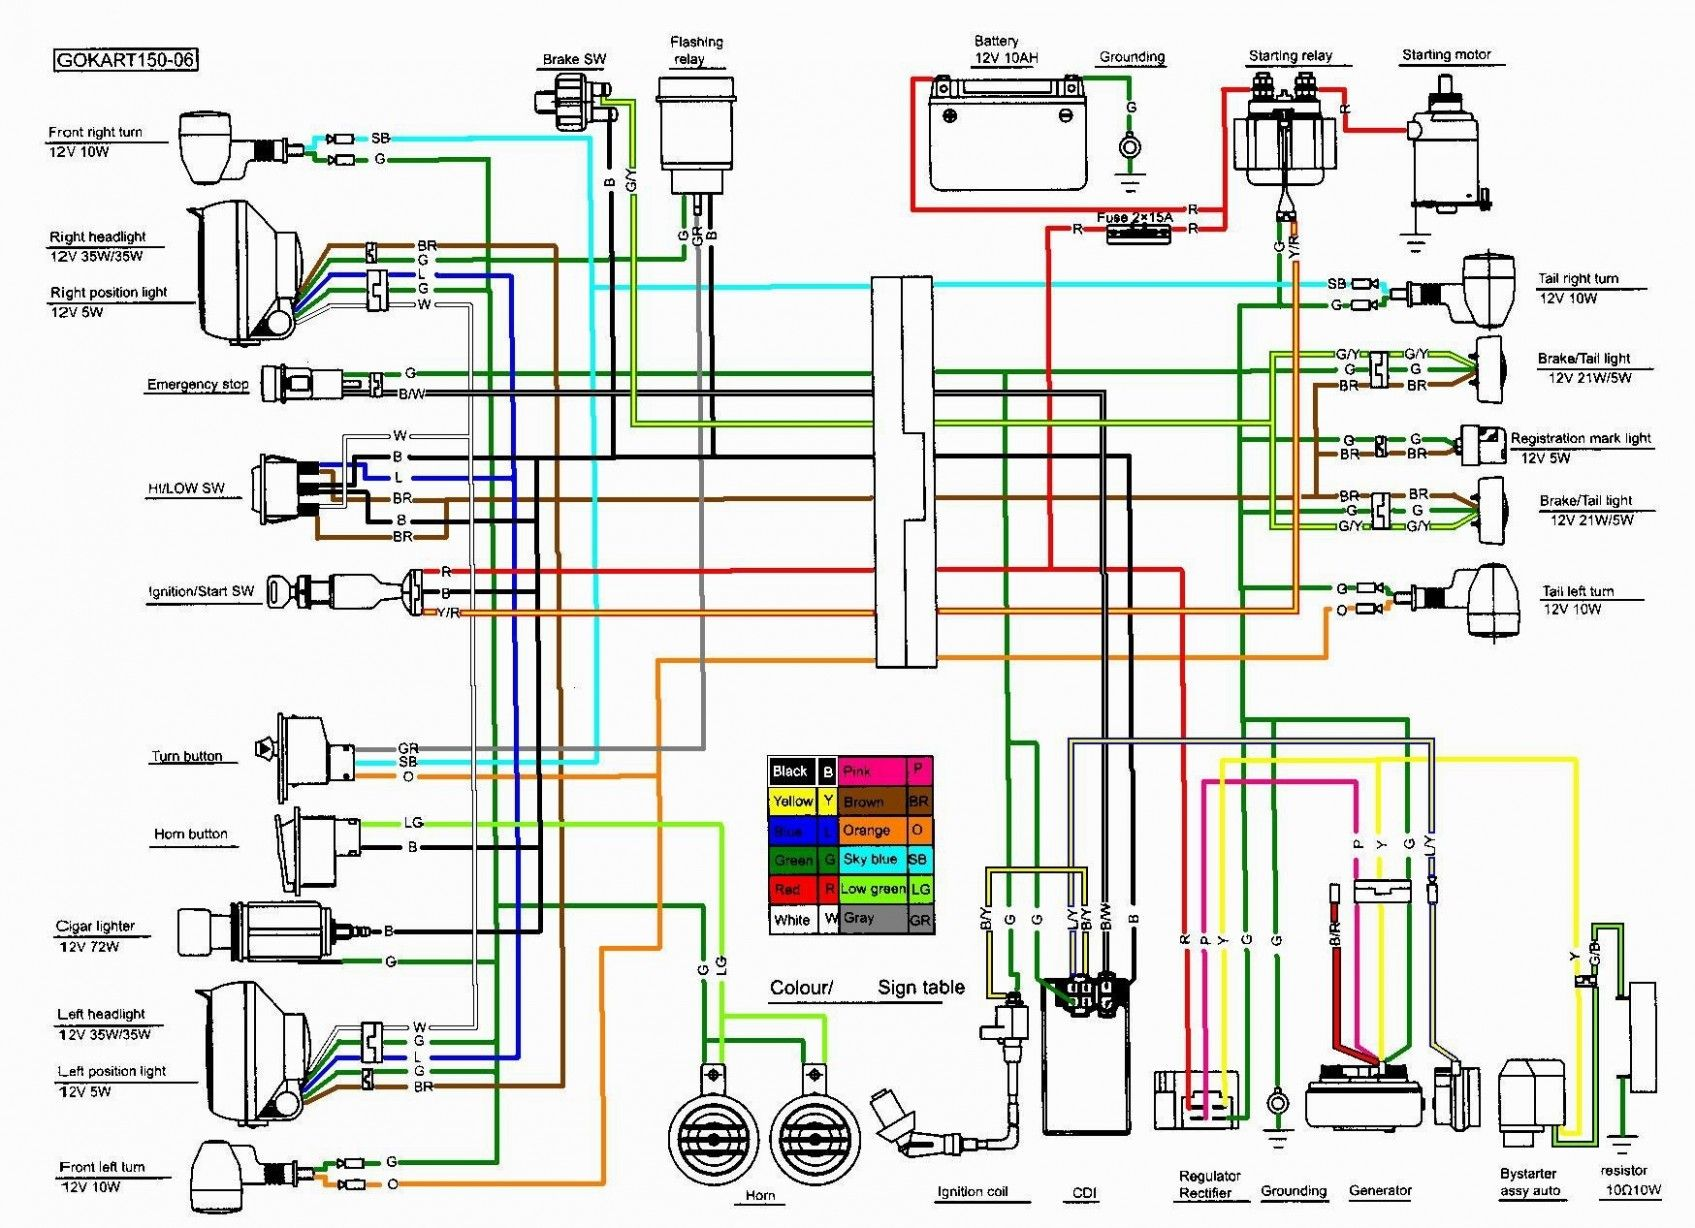 Gy4 4cc Engine Diagram Download Motorcycle Wiring 150cc Go Kart 150cc Scooter